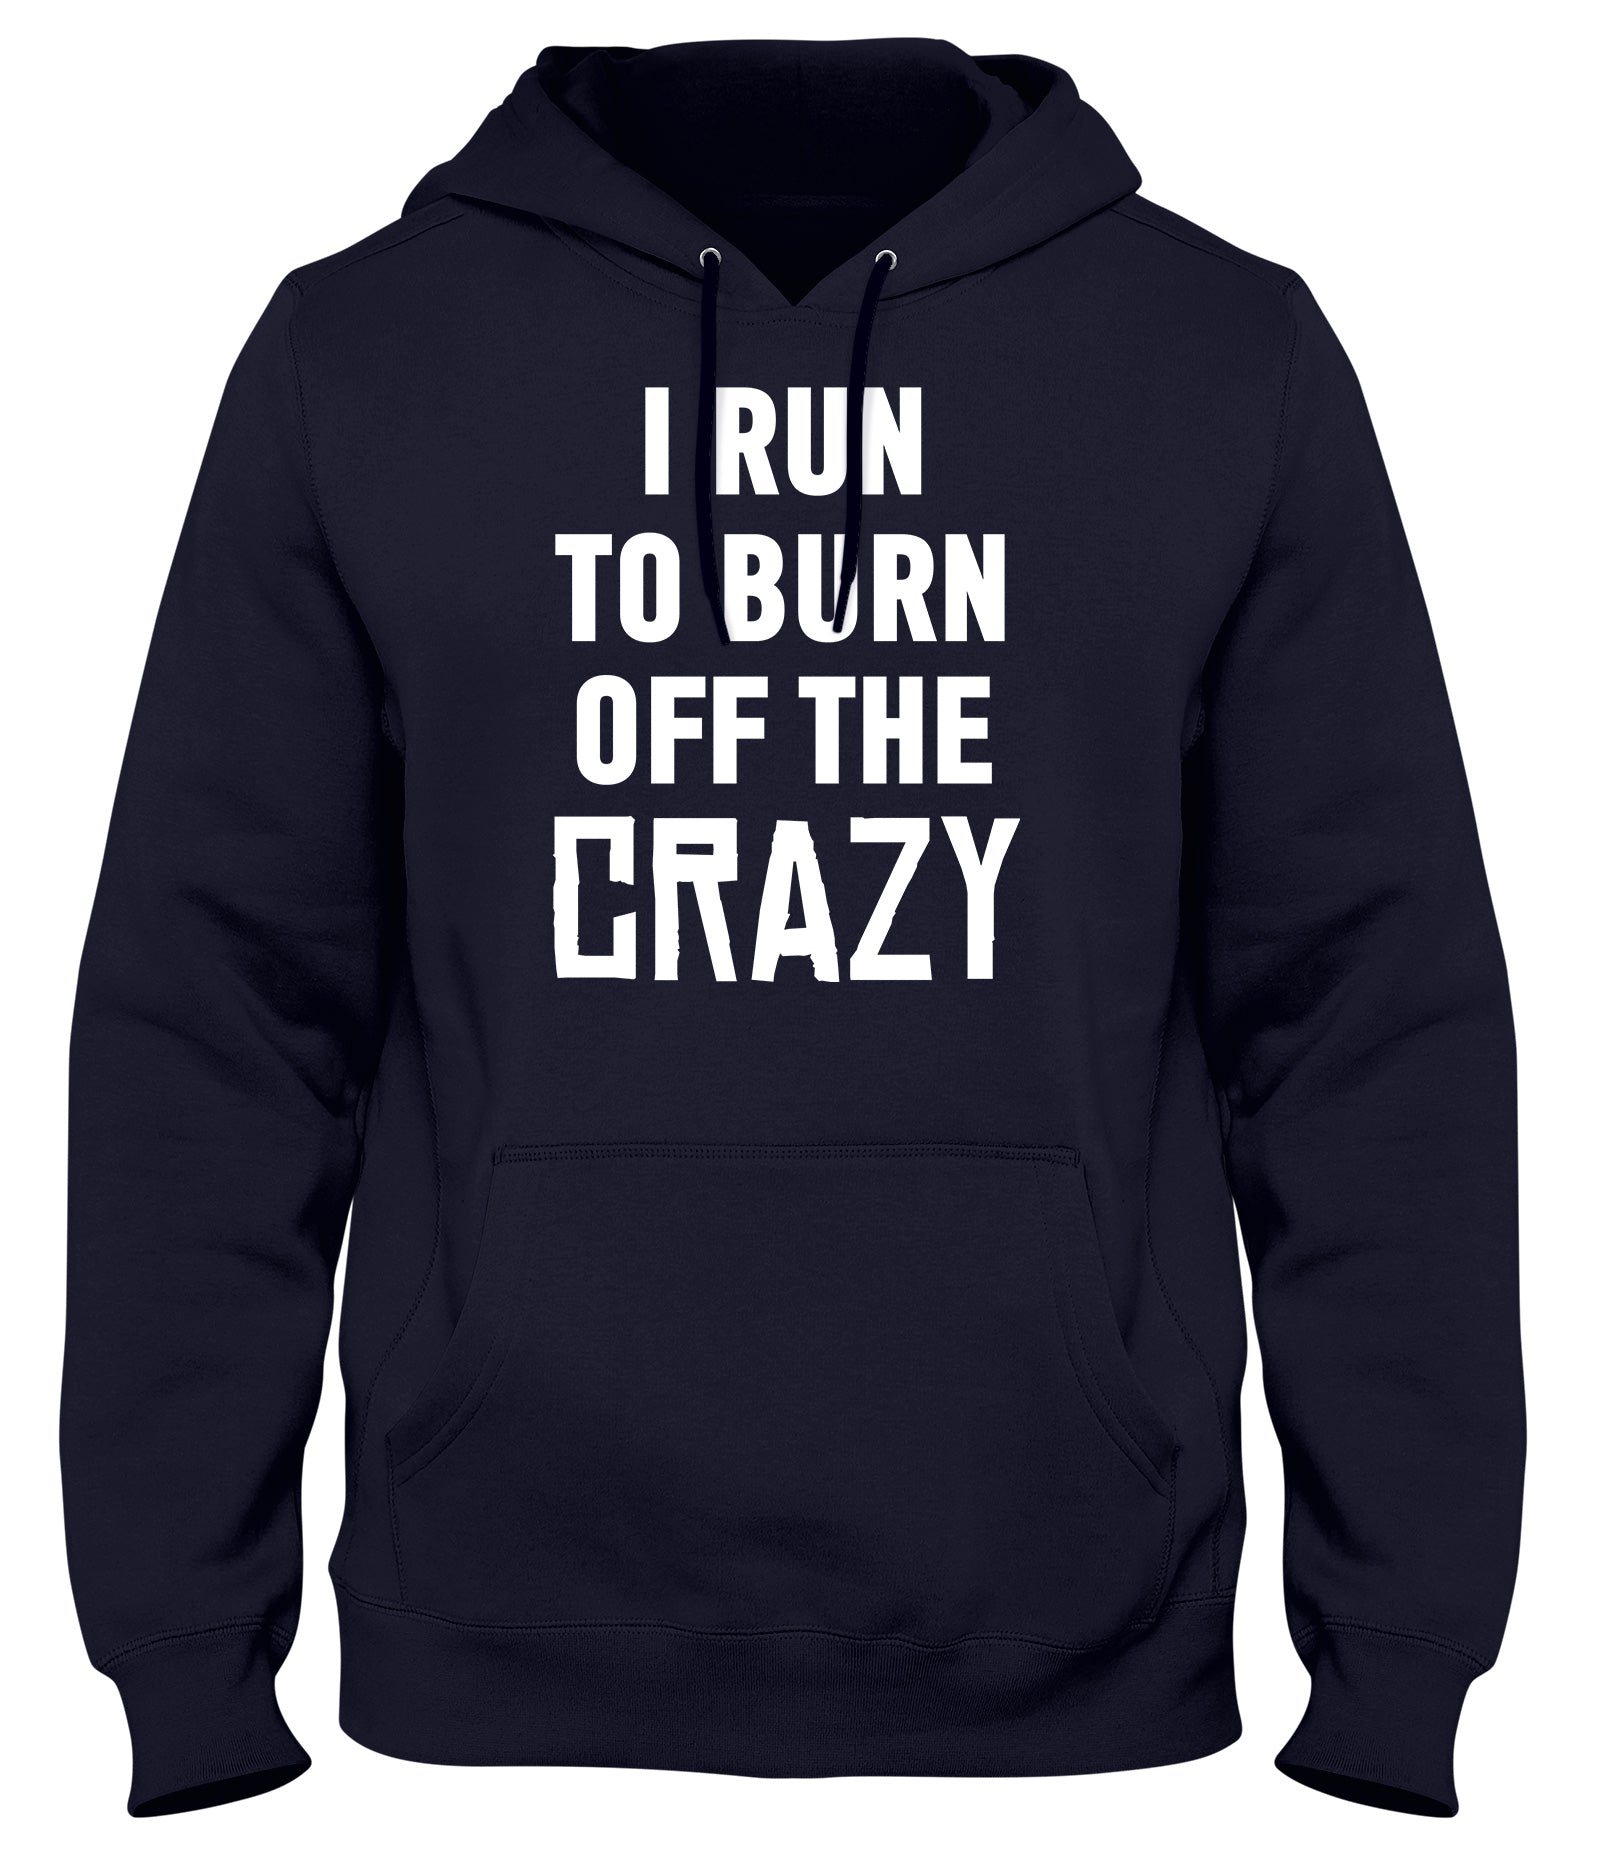 I RUN TO BURN OFF THE CRAZY FUNNY MENS LADIES WOMENS UNISEX HOODIE